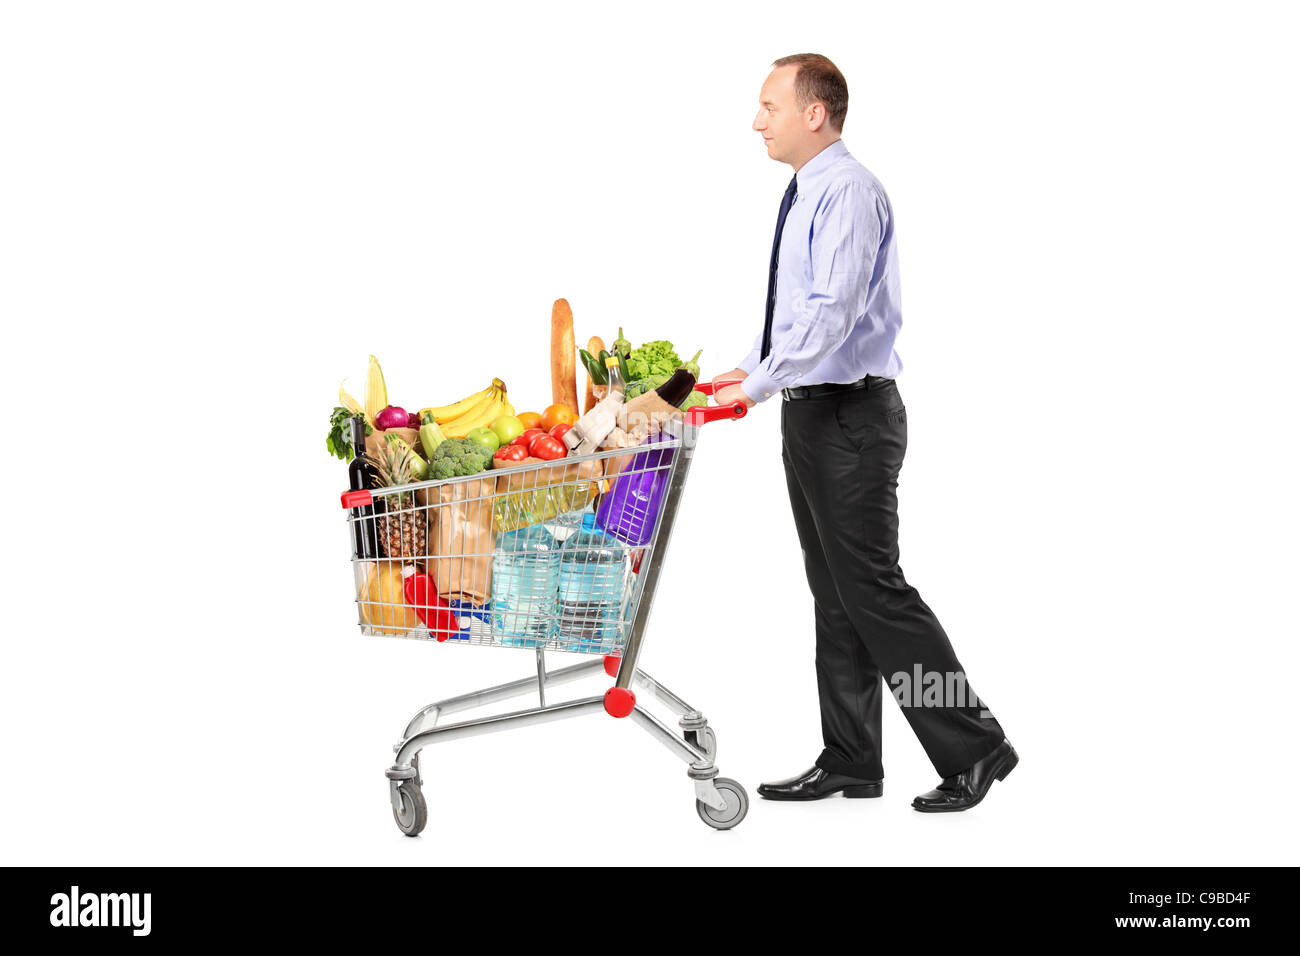 Person pushing a shopping cart full with groceries - Stock Image